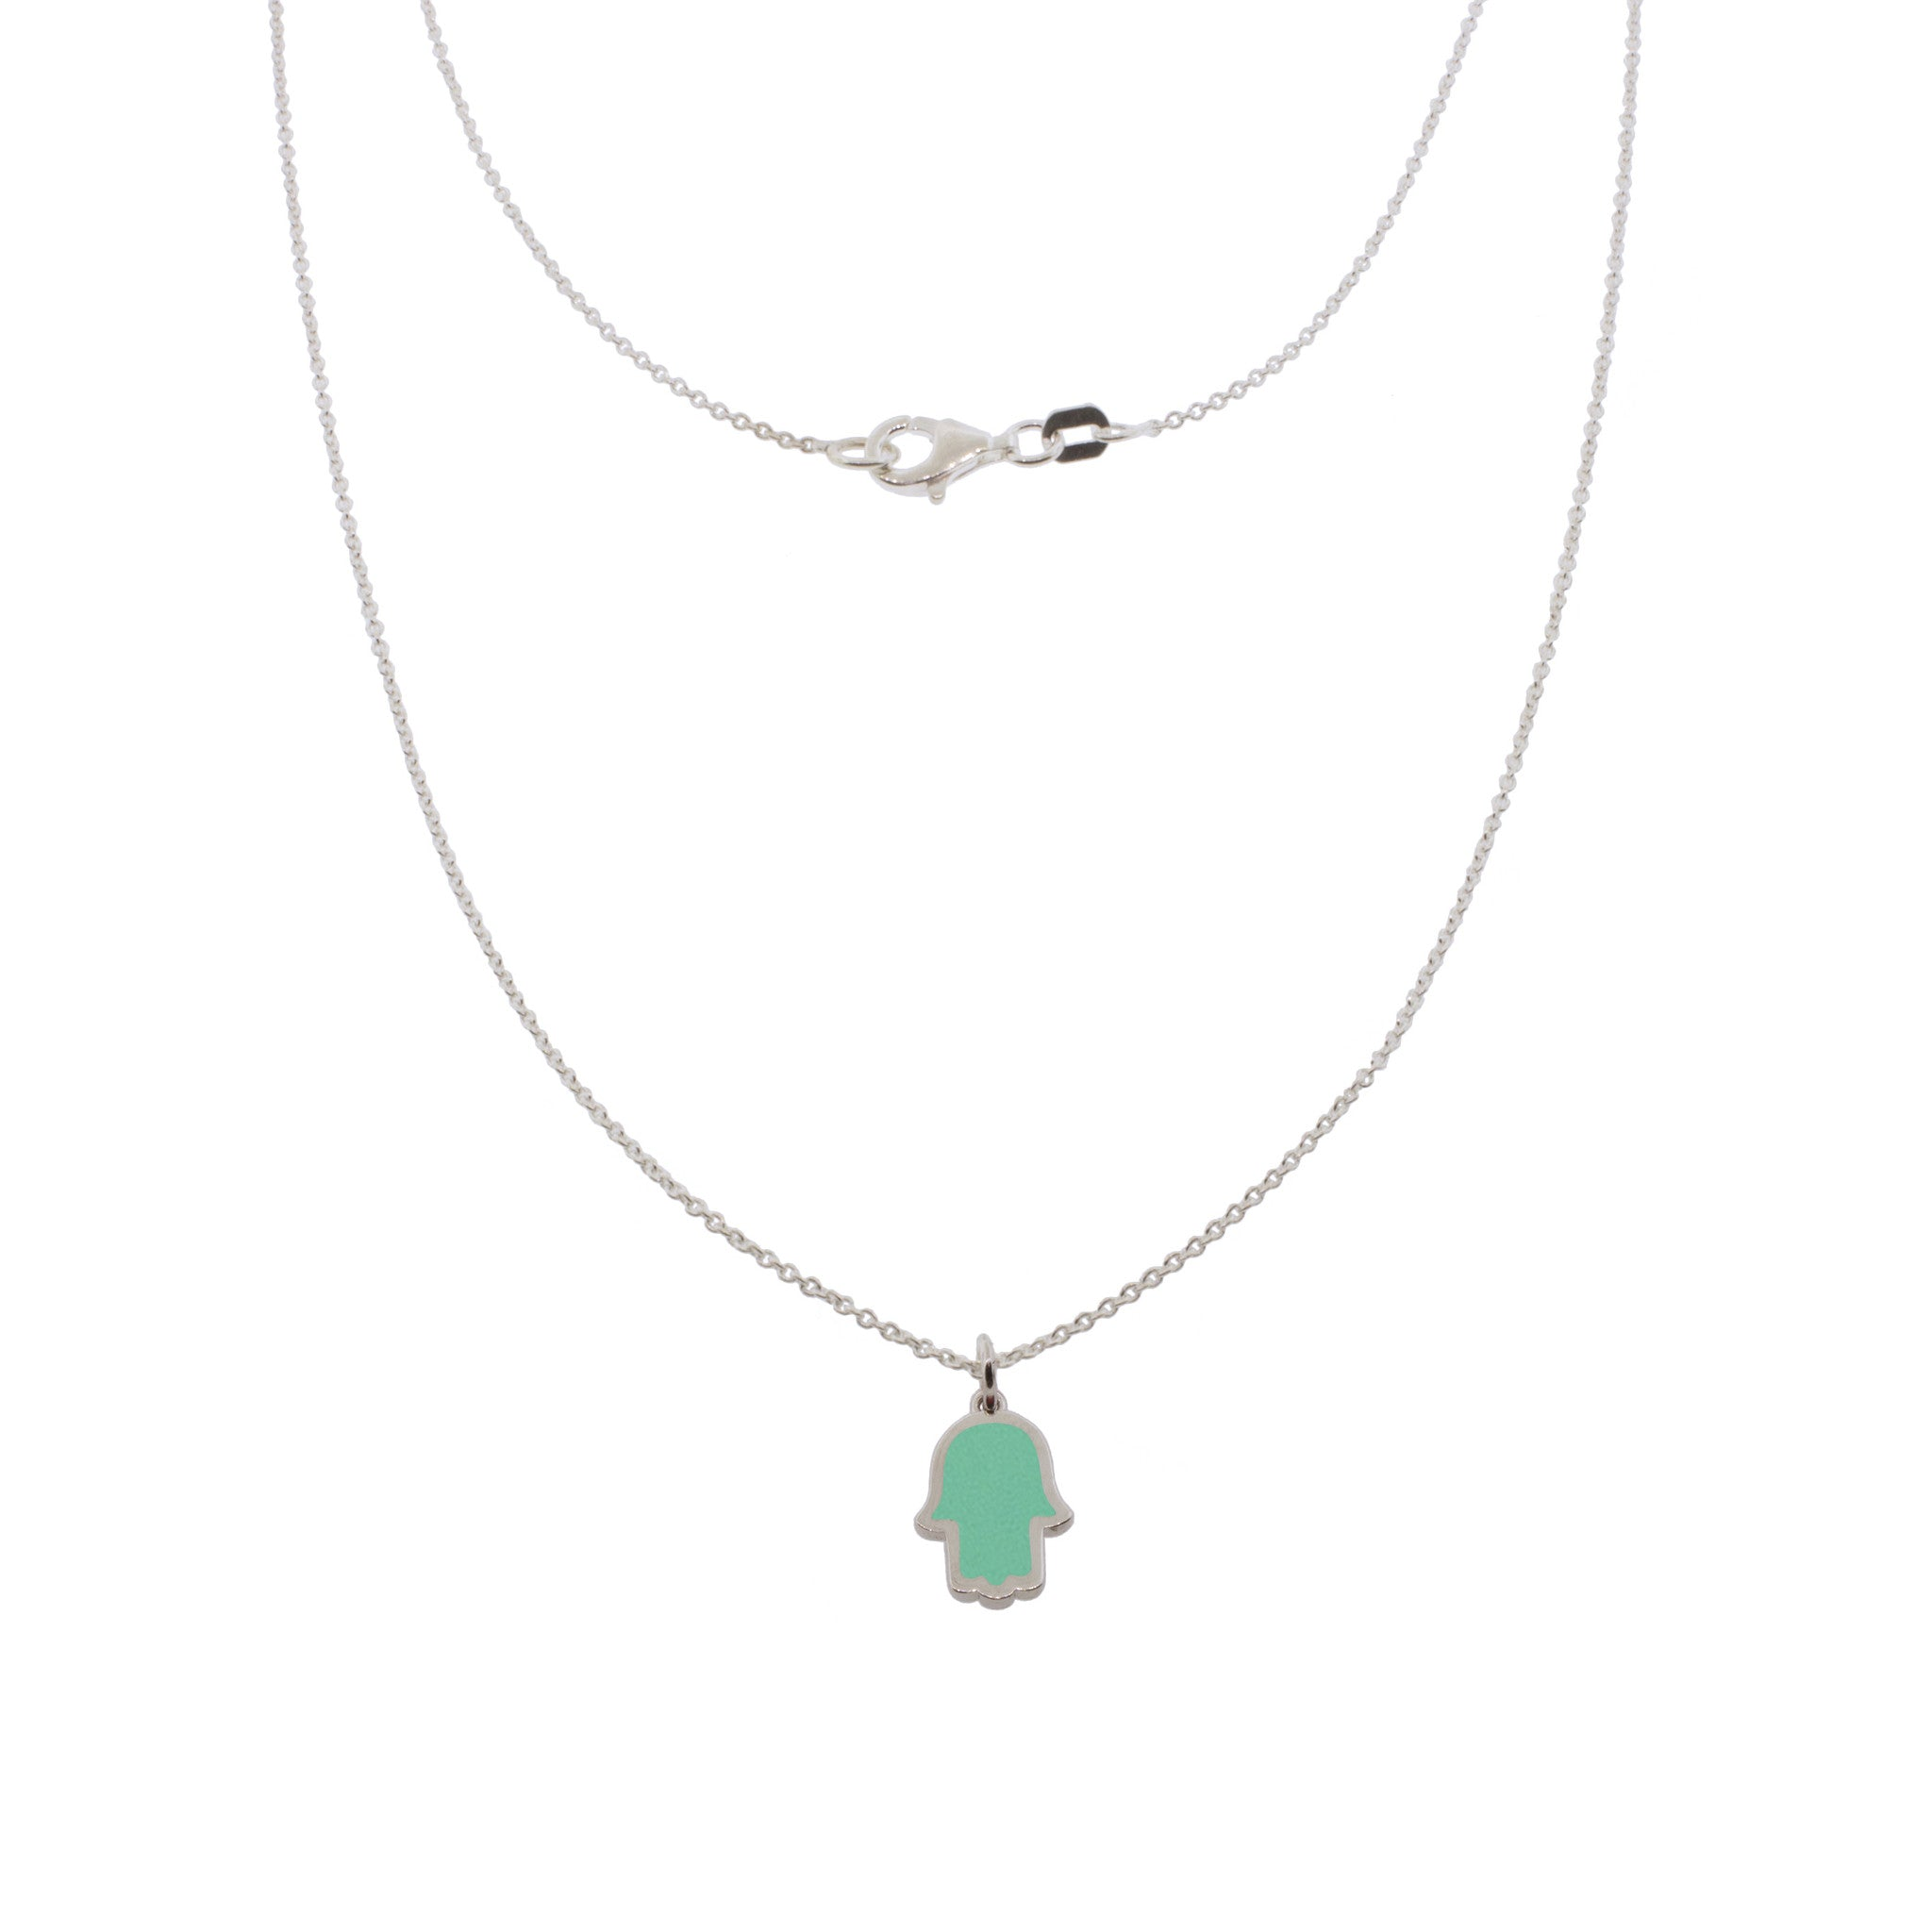 17-inch Touch of Luck Sterling Silver Necklace - Turquoise